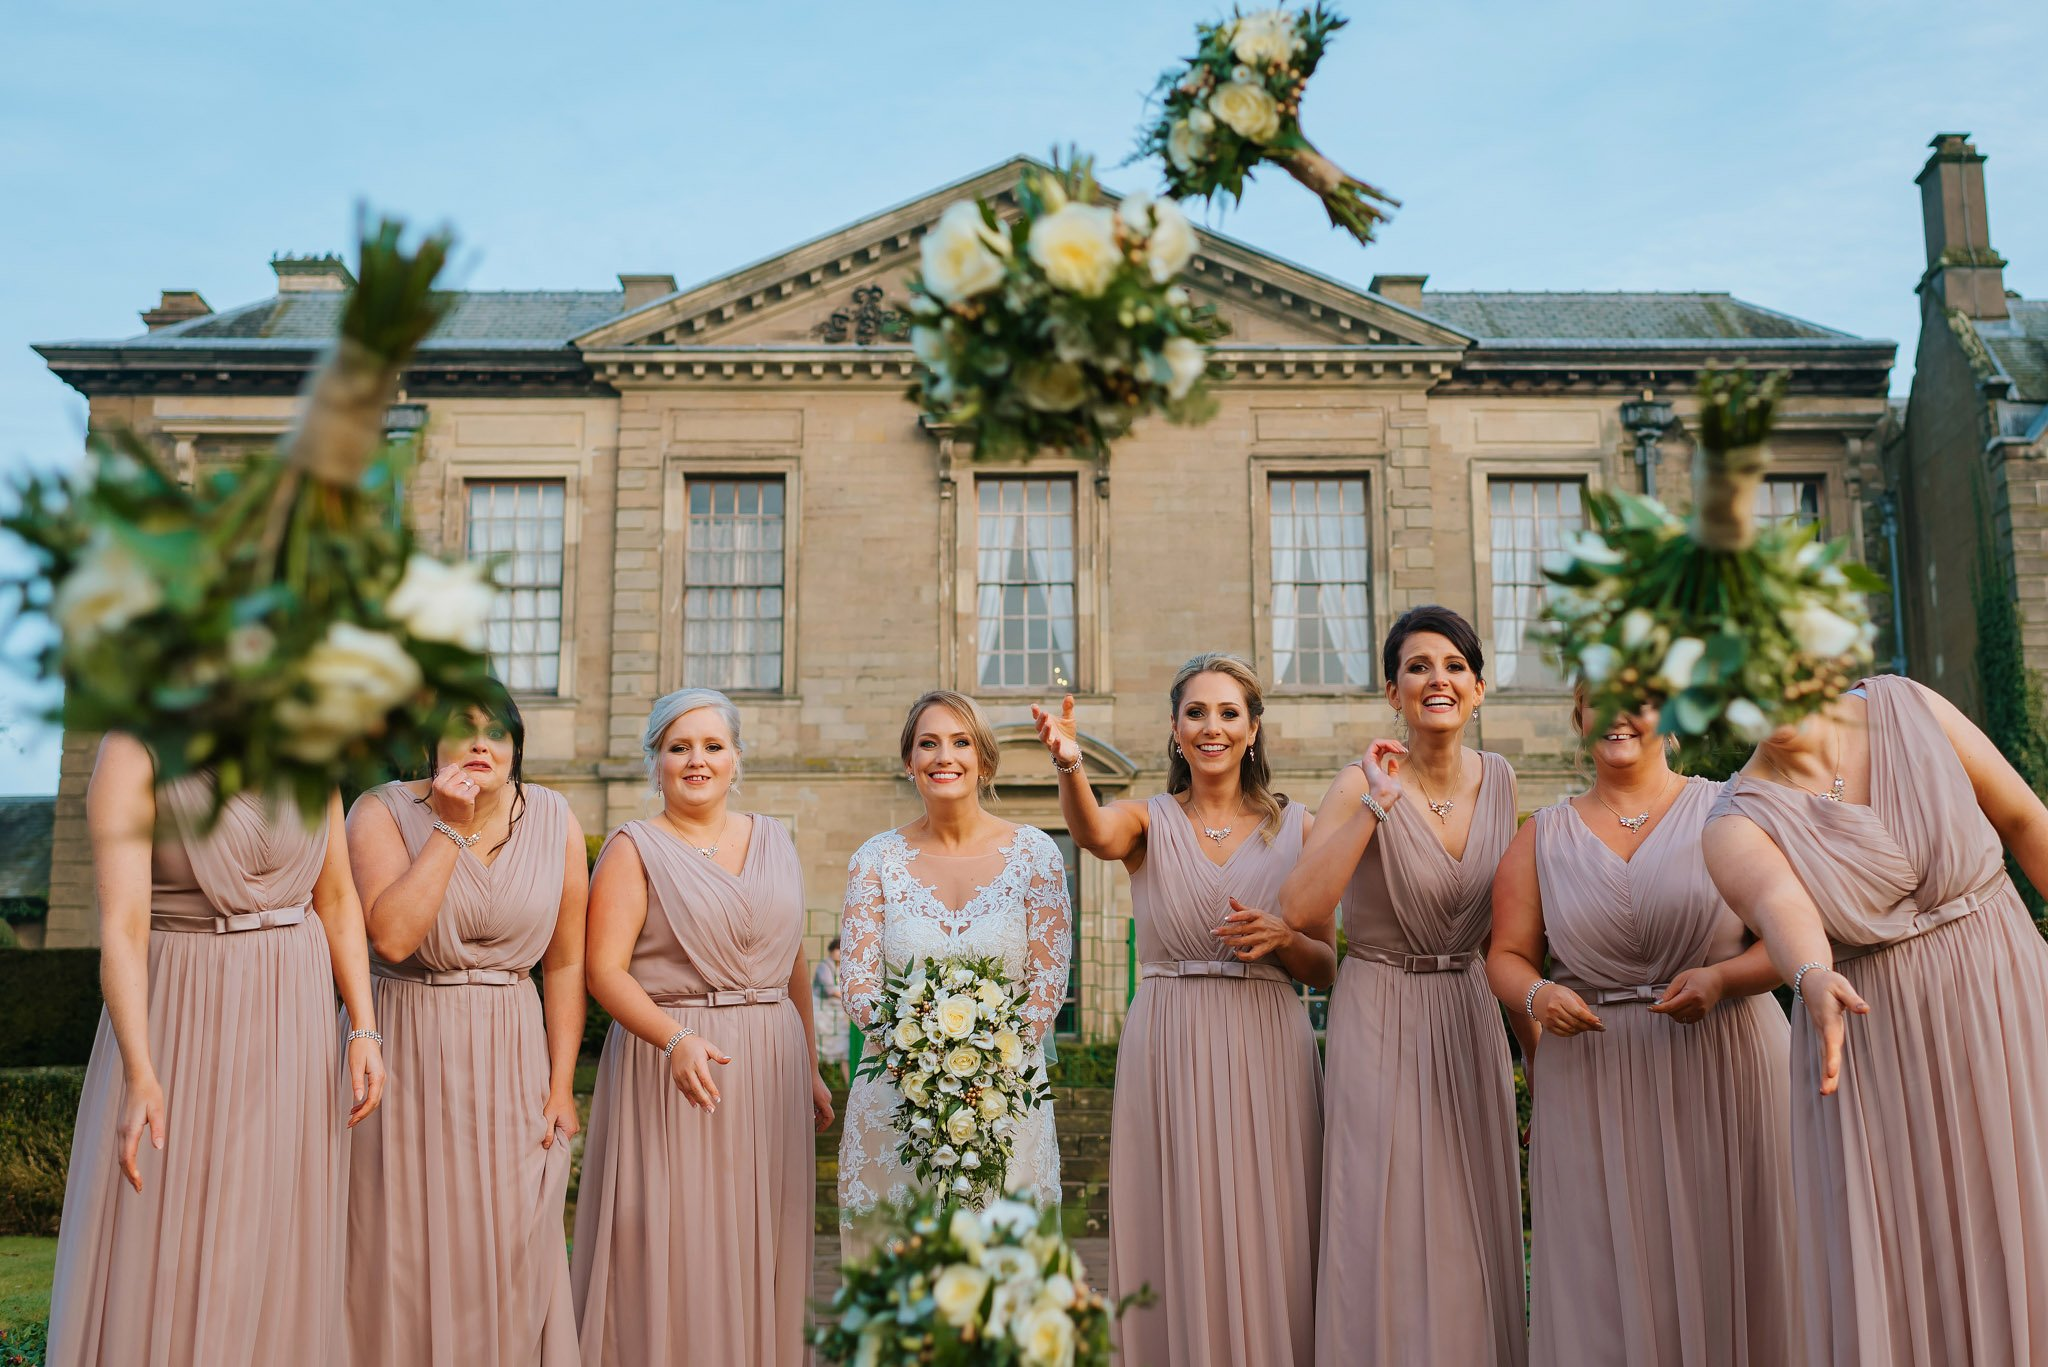 coombe abbey wedding coventry 52 - Coombe Abbey wedding in Coventry, Warwickshire - Sam + Matt